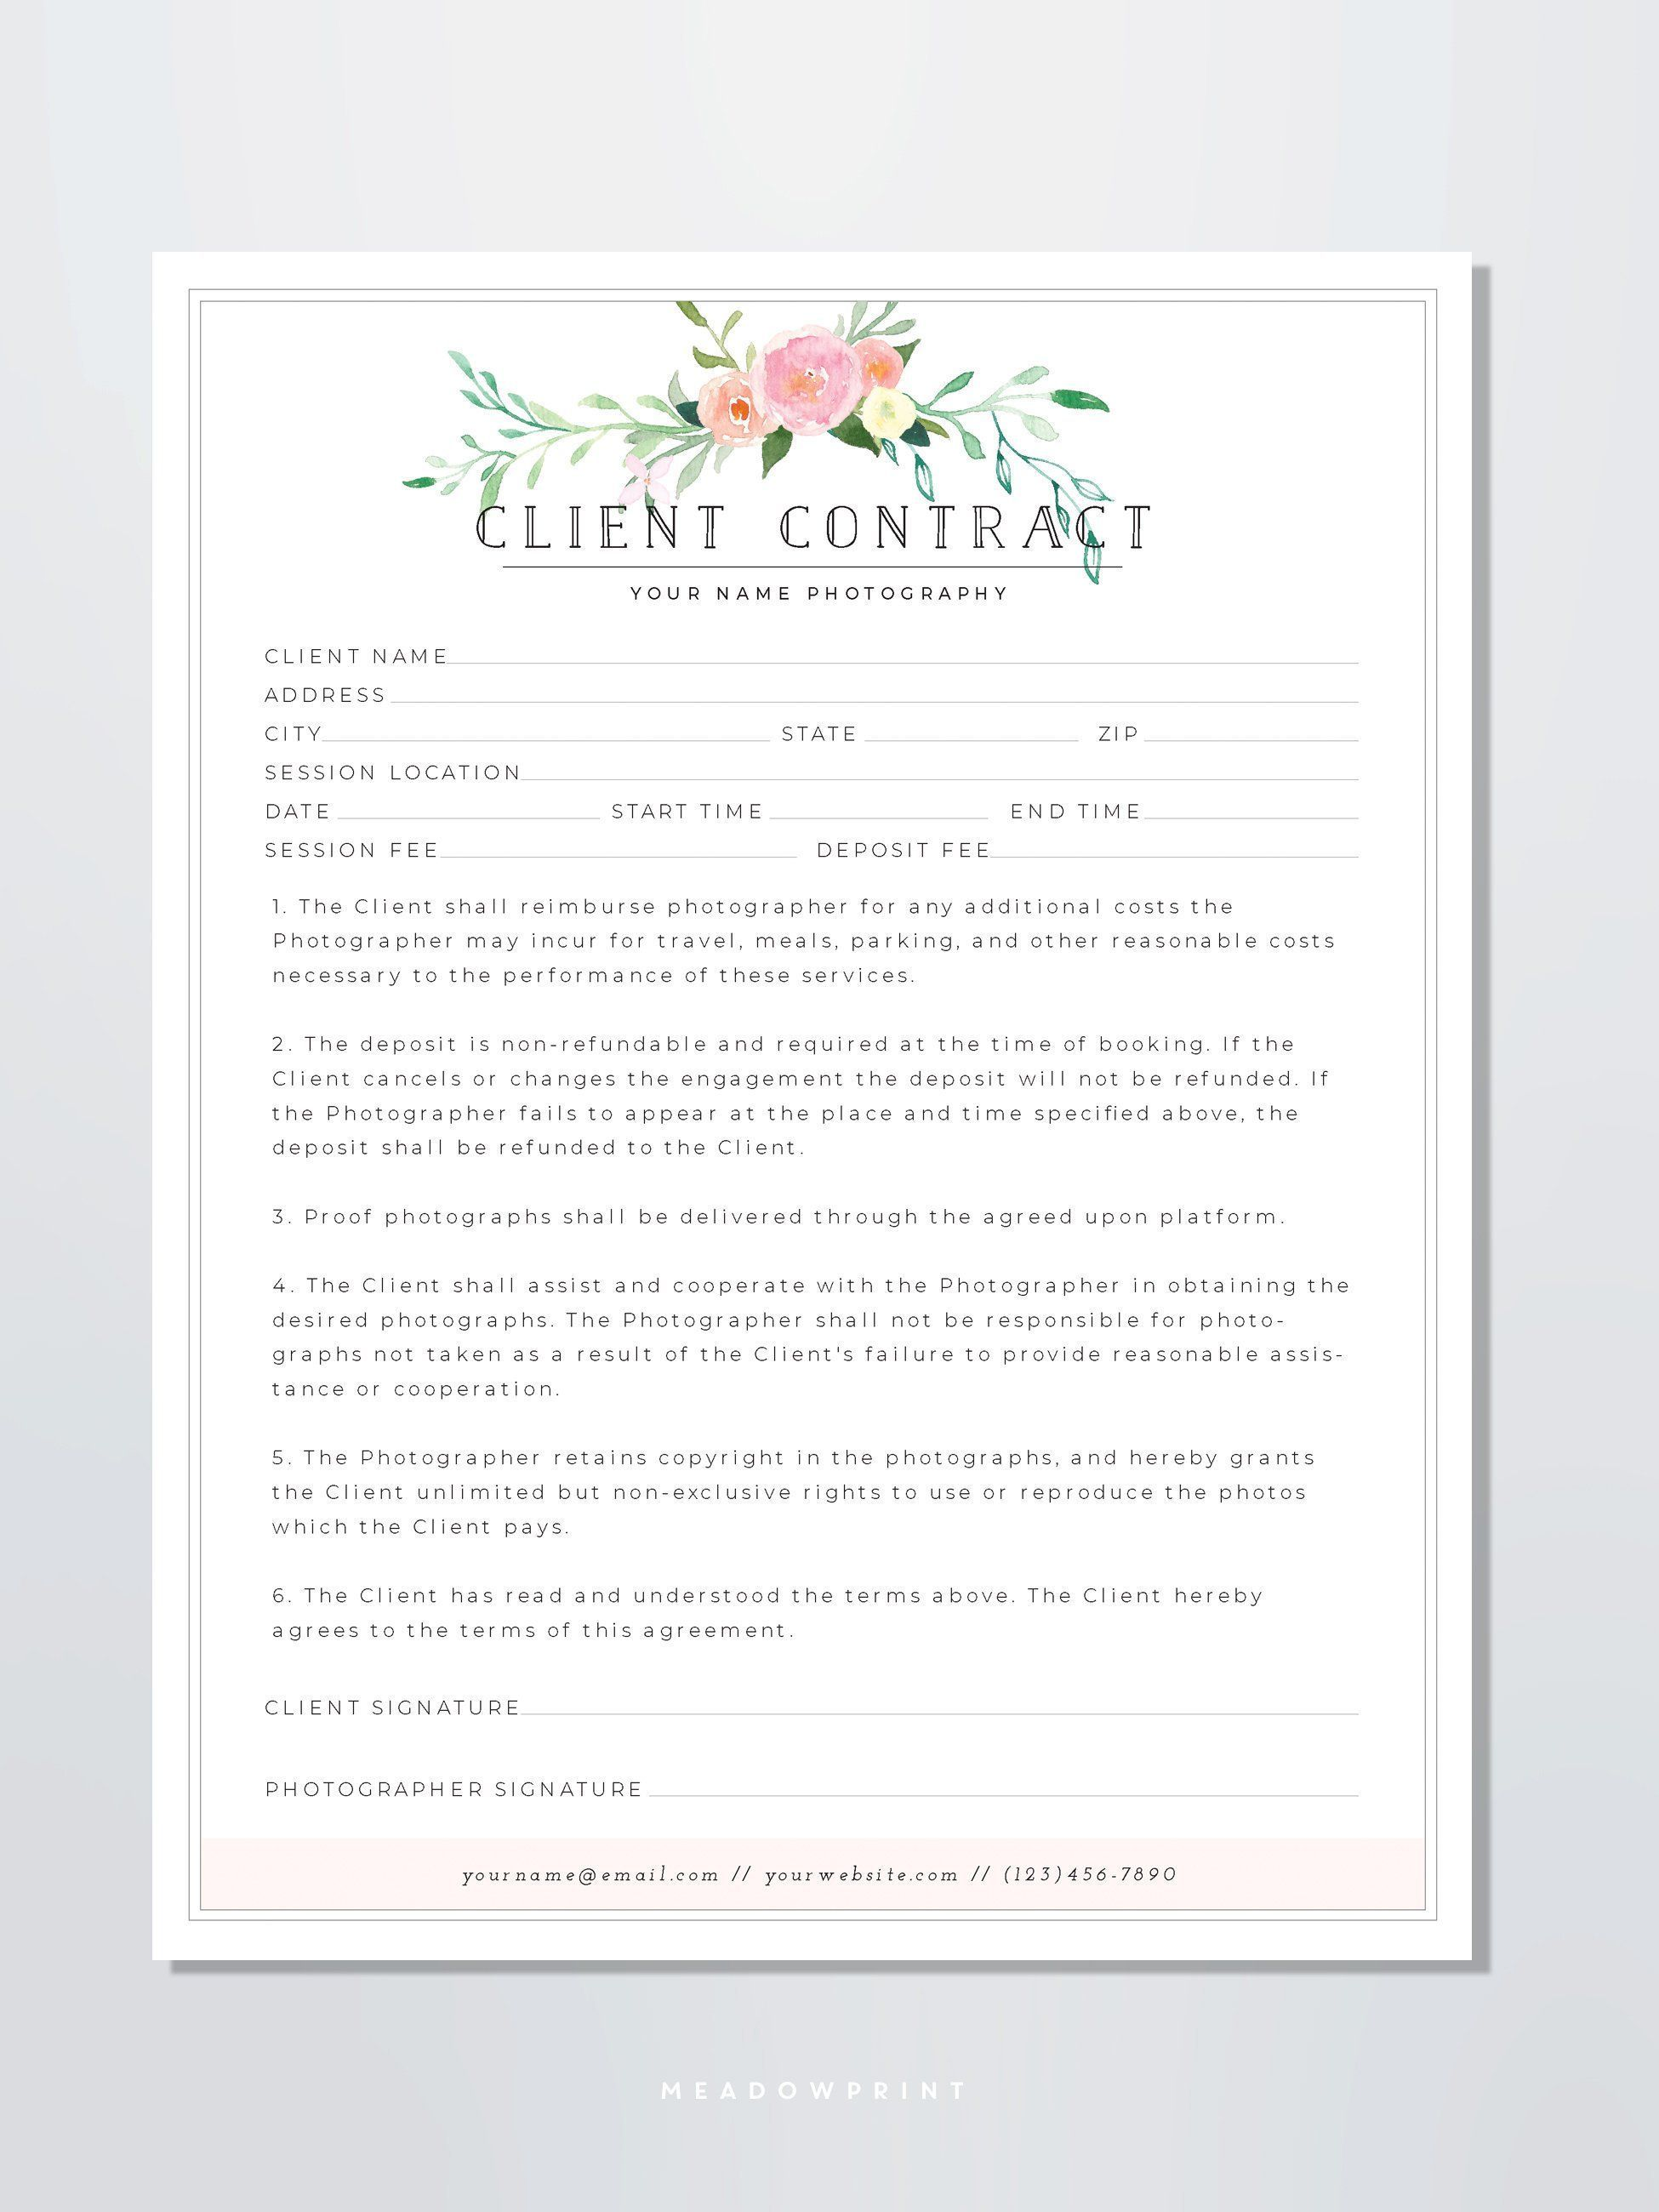 Client Contract Template Photography Form For Photographers